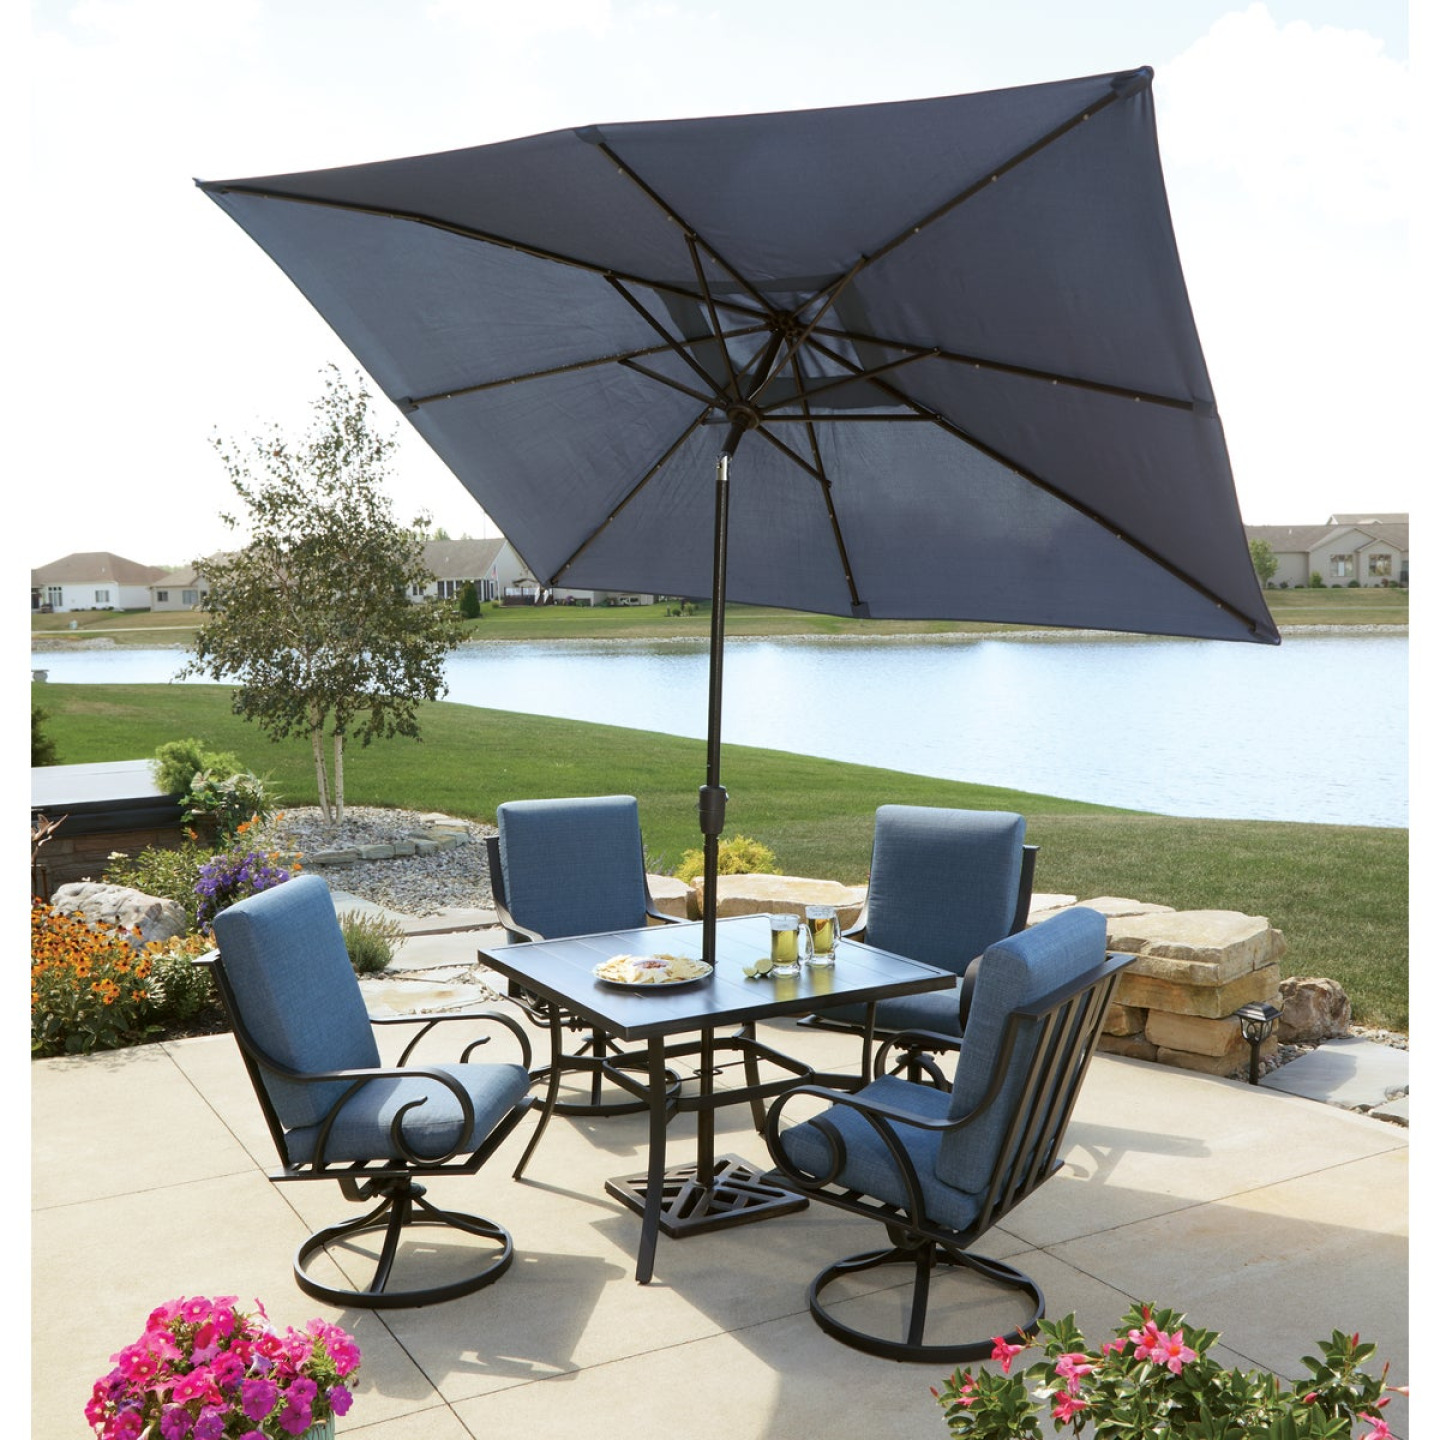 Pacific Casual Capri 5-Piece Fully Cushioned Swivel Dining Set Image 6